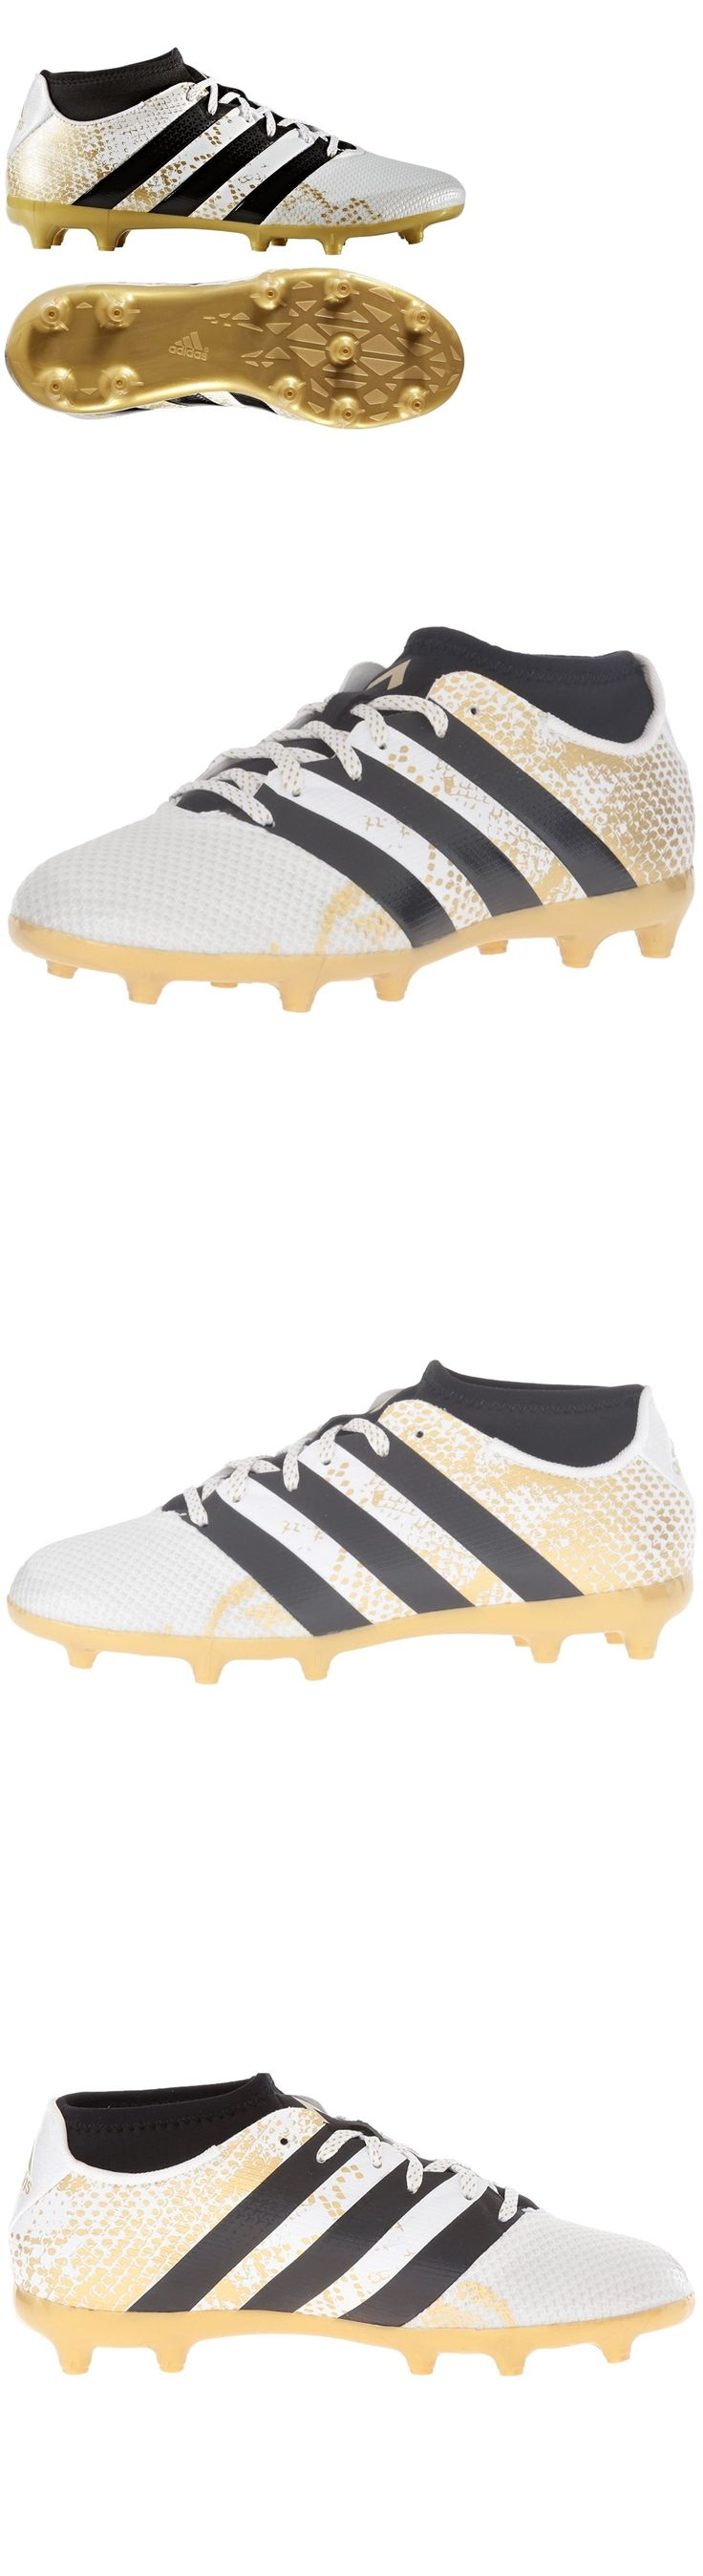 Youth 159177: Adidas Ace 16.3 Primemesh Youth Soccer Cleats Boys European Football Shoes White BUY IT NOW ONLY: $59.95